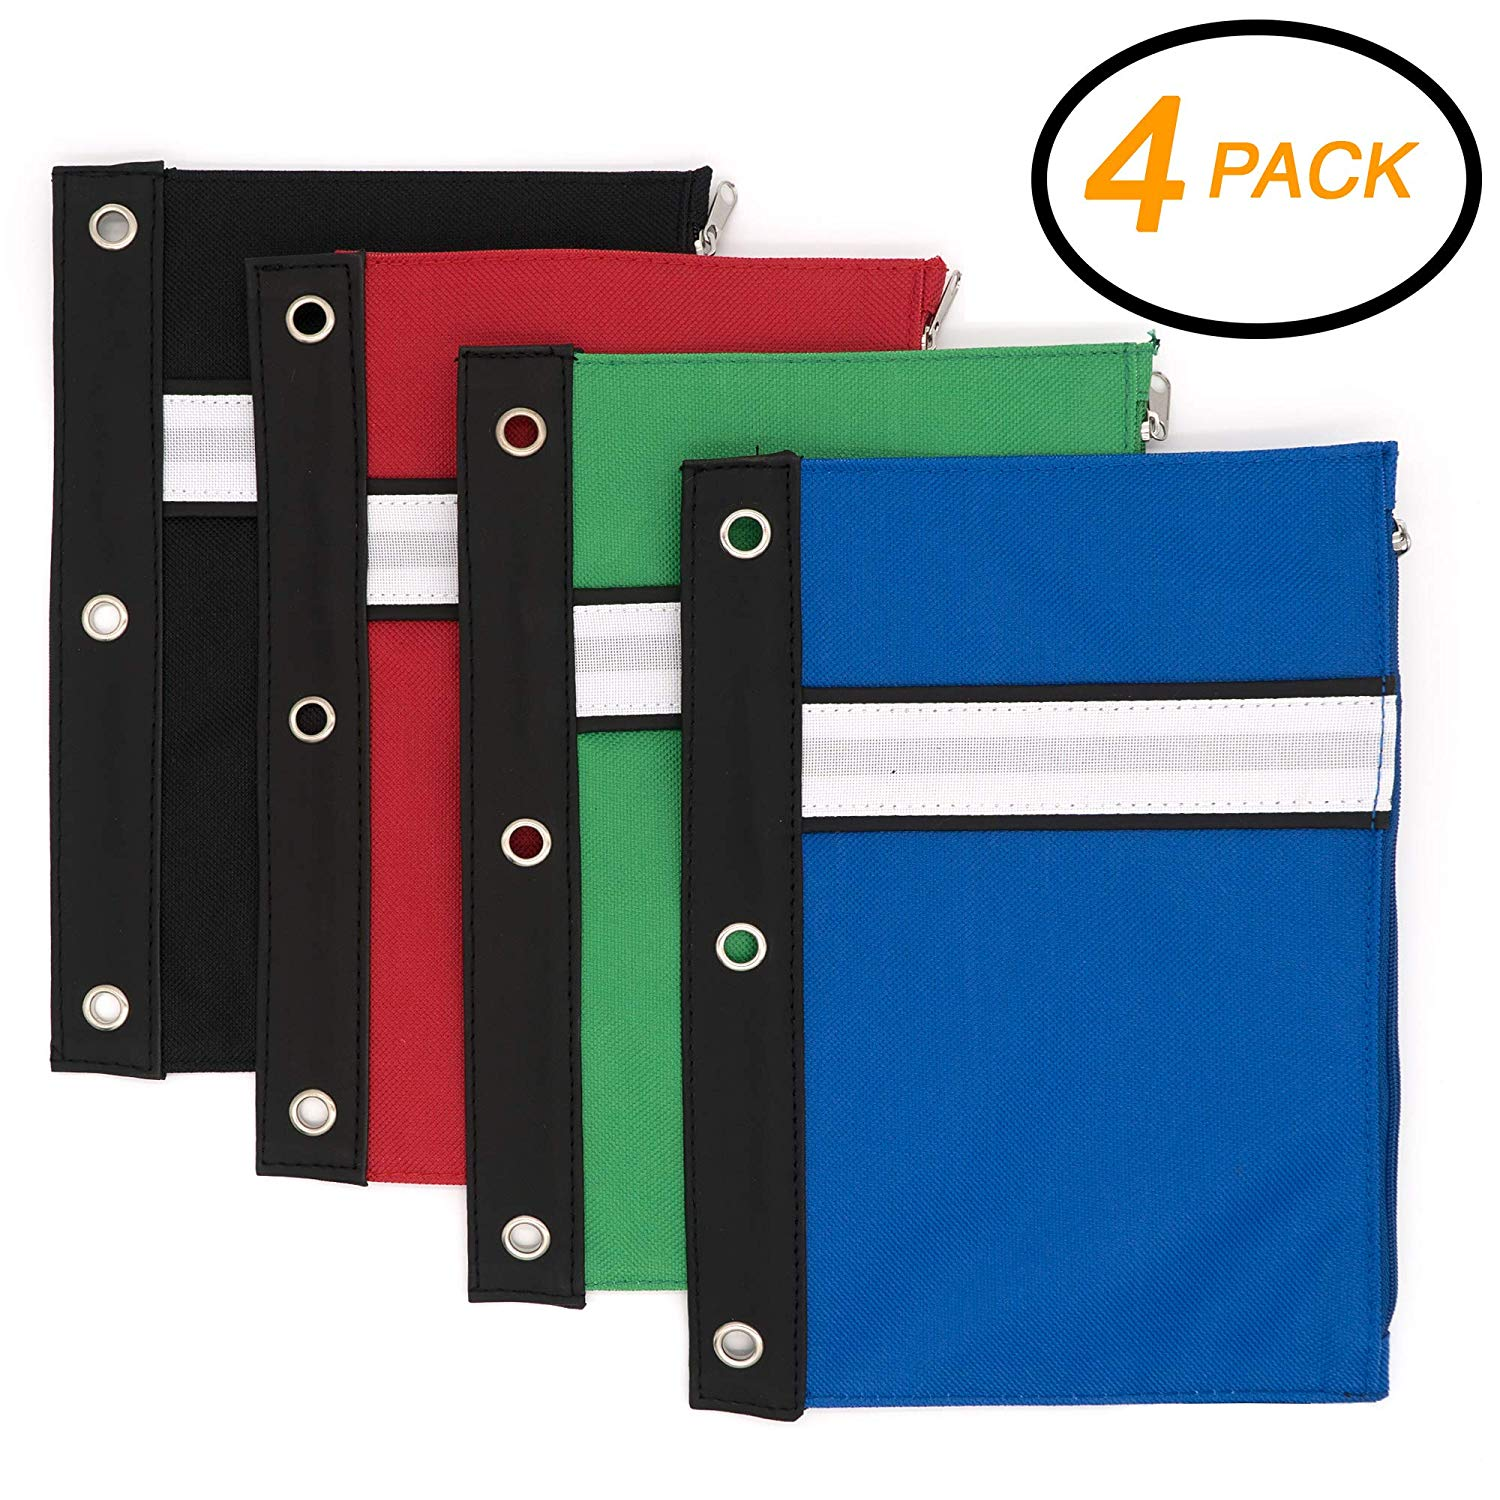 Emraw 3-Ring Pencil Pouches - Assorted Color Pencil Pouch with Double Zipper Pockets for 3-Ring Binder Pen Holder Case, Zipper Pencil Pouch with Side Pockets for Girls and Boys (4-Pack)